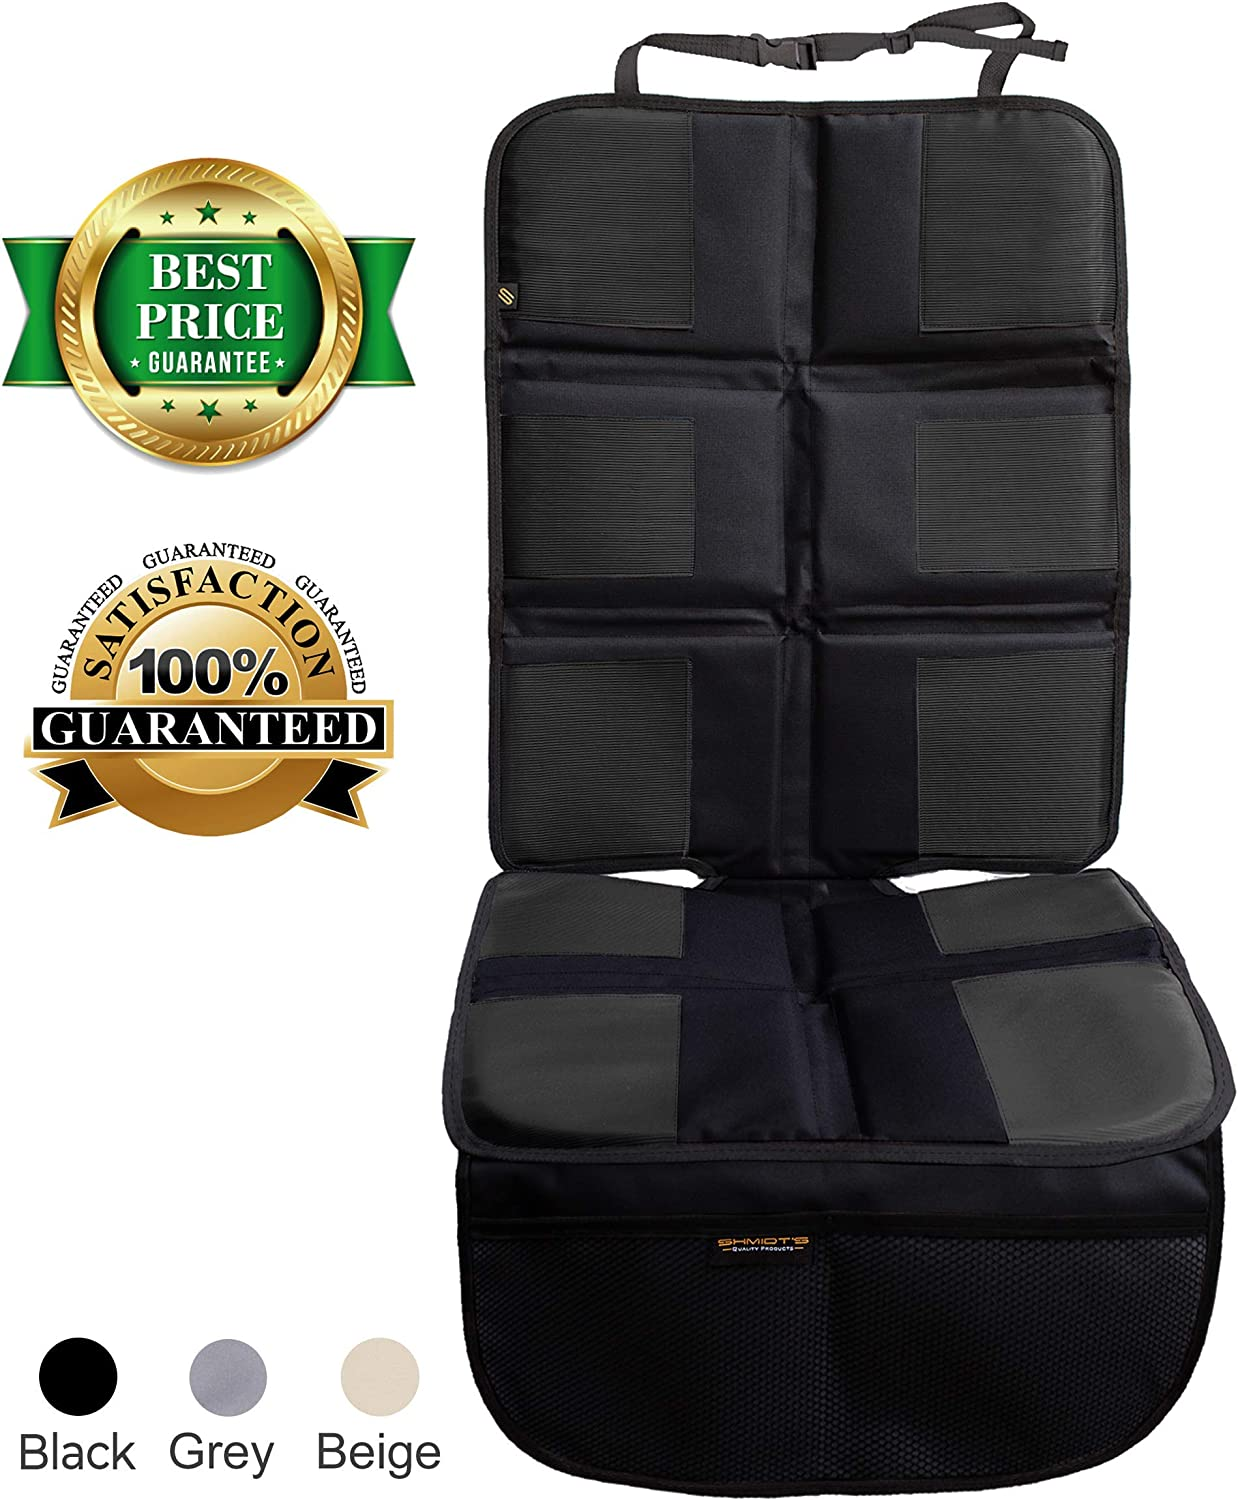 Shmidt'S Car Seat Protector - Luxury Car Seat Cover Summer/Winter for Baby & Child - Anti-Slip, Heavy Duty Car Seat Mat Protector for Infants W/Upholstery, Black/Dark